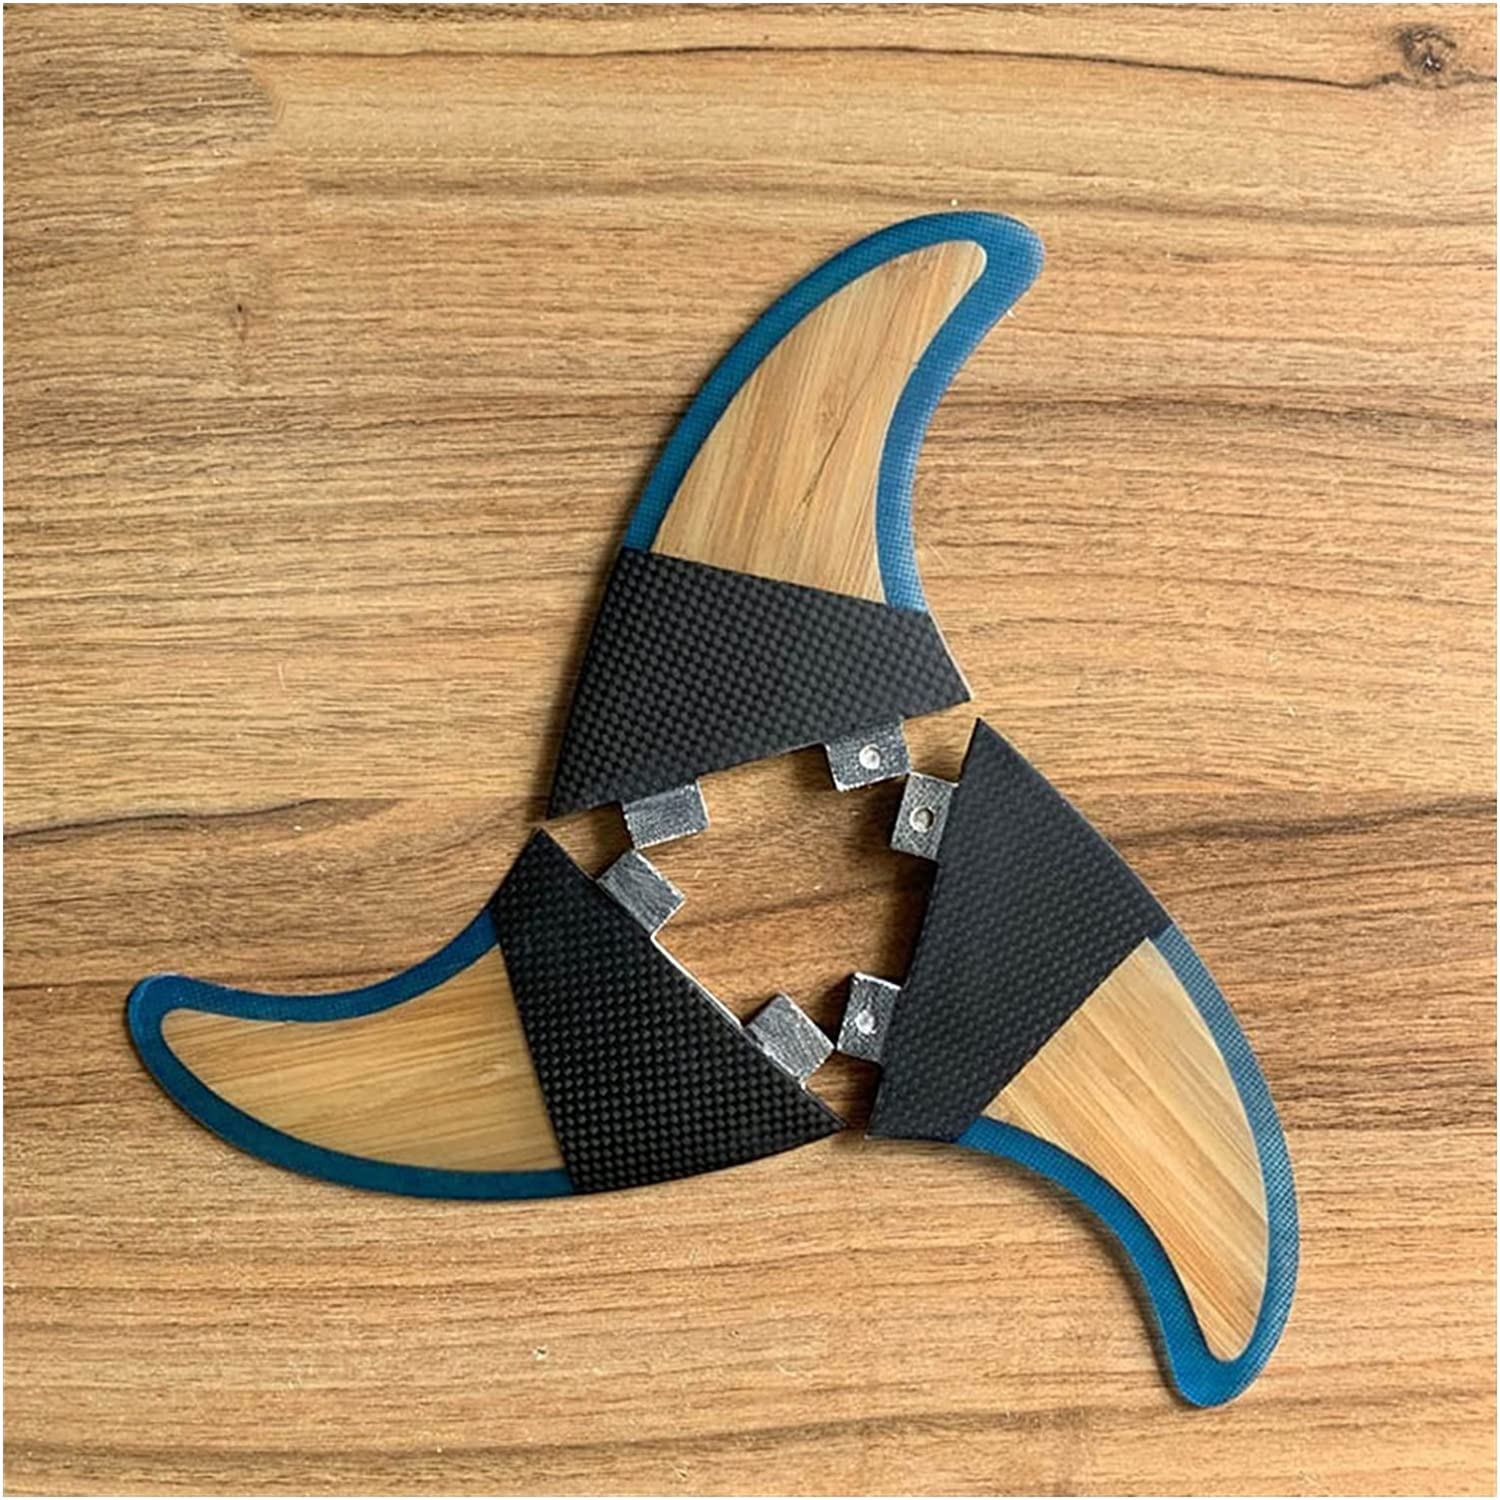 Surfboard Tail Thruster 3Pcs Surfboard Fin Surfing Thruster Carb